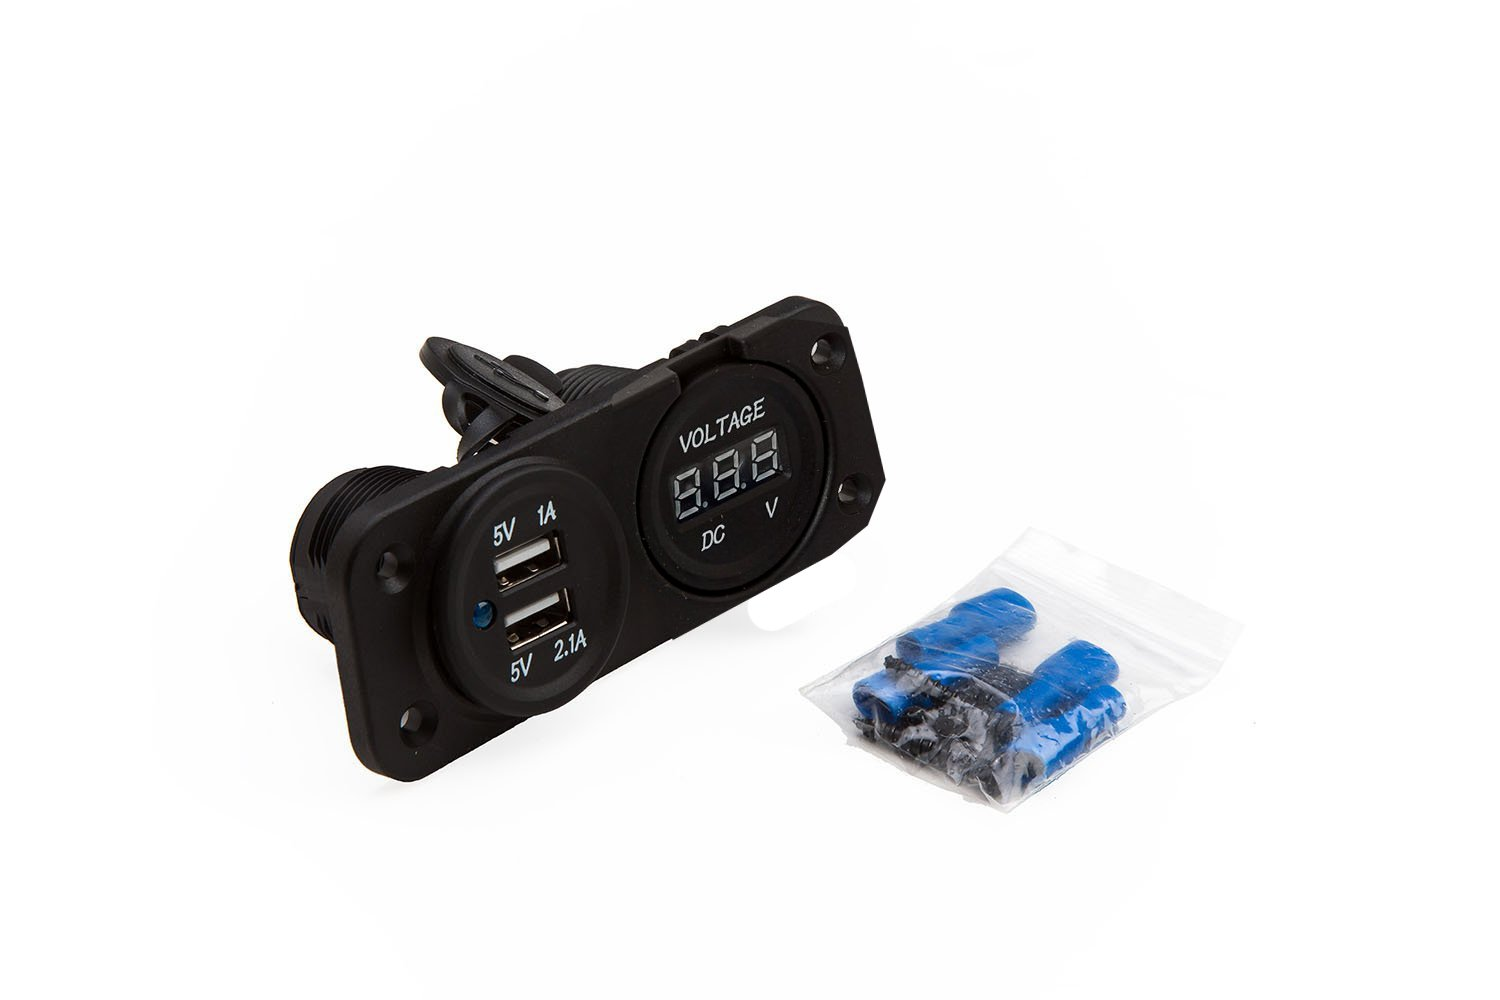 61hl3wqMEqL._SL1500_ amazon com panel dual usb socket and voltmeter for boat rv  at creativeand.co